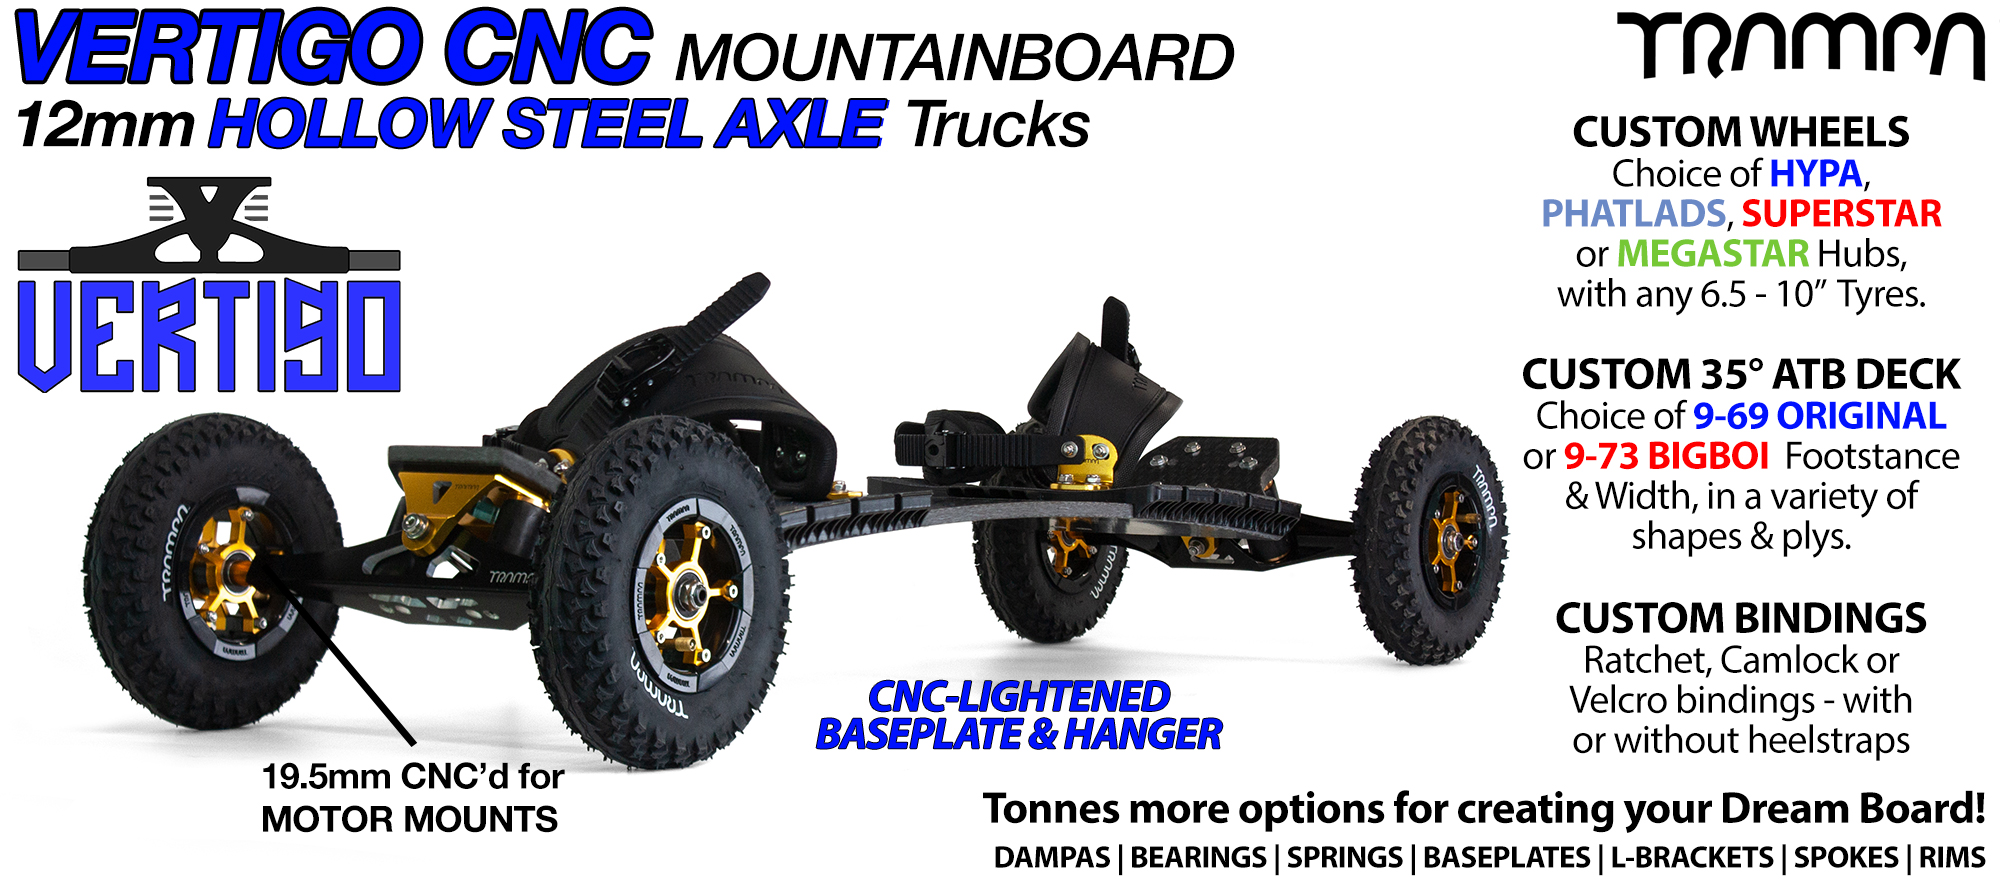 TRAMPA Mountainboard with 12mm HOLLOW Axle VERTIGO Trucks RATCHET Bindings & Custom Wheels